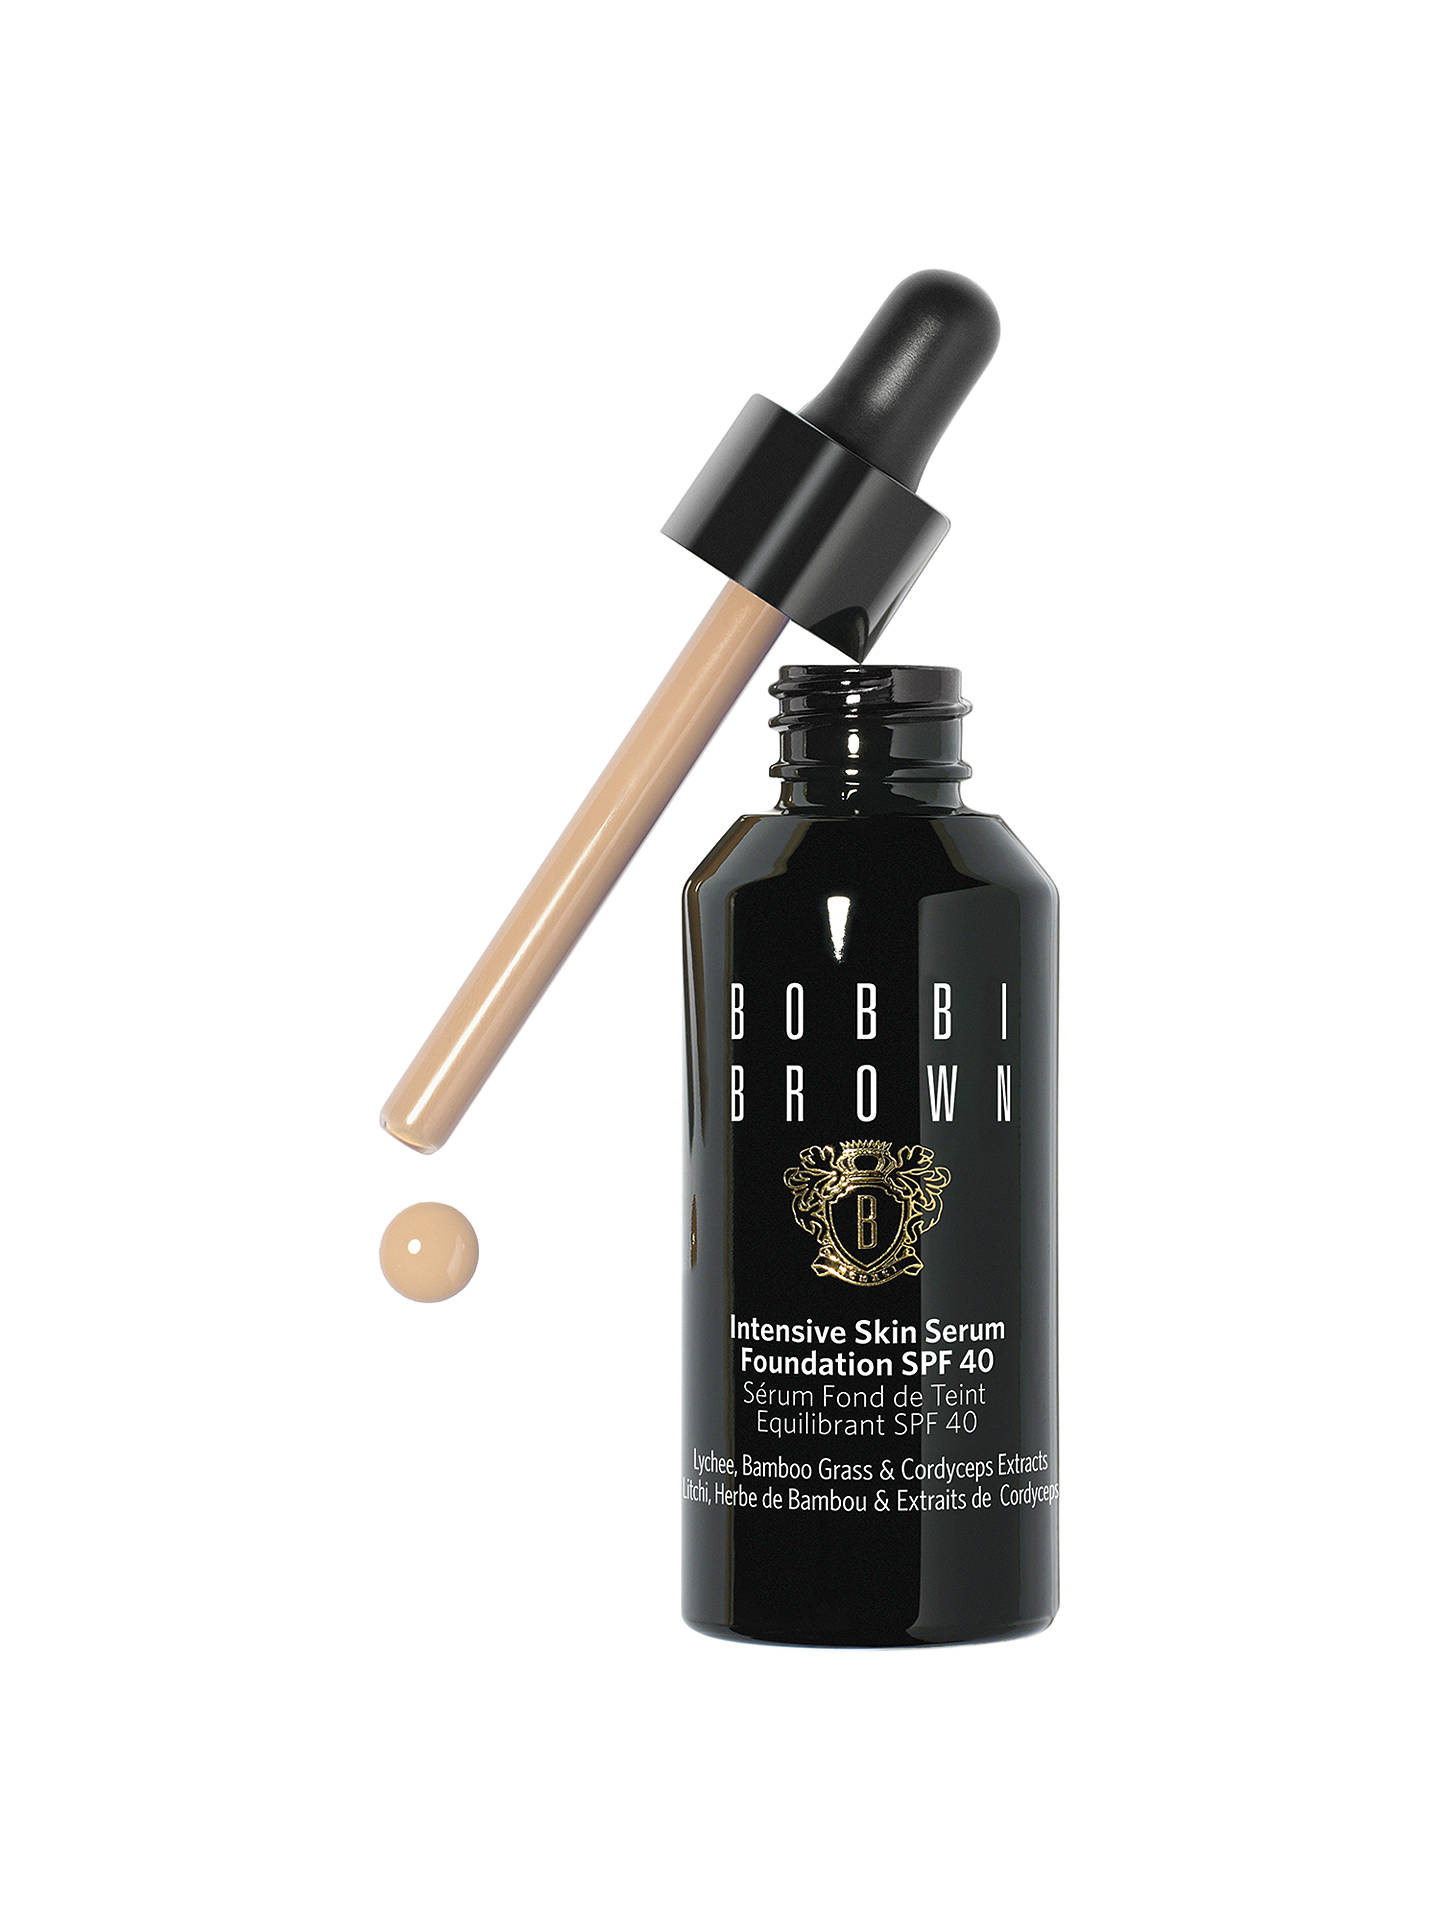 Buy Bobbi Brown Intensive Skin Serum Foundation SPF 40, Espresso Online at johnlewis.com